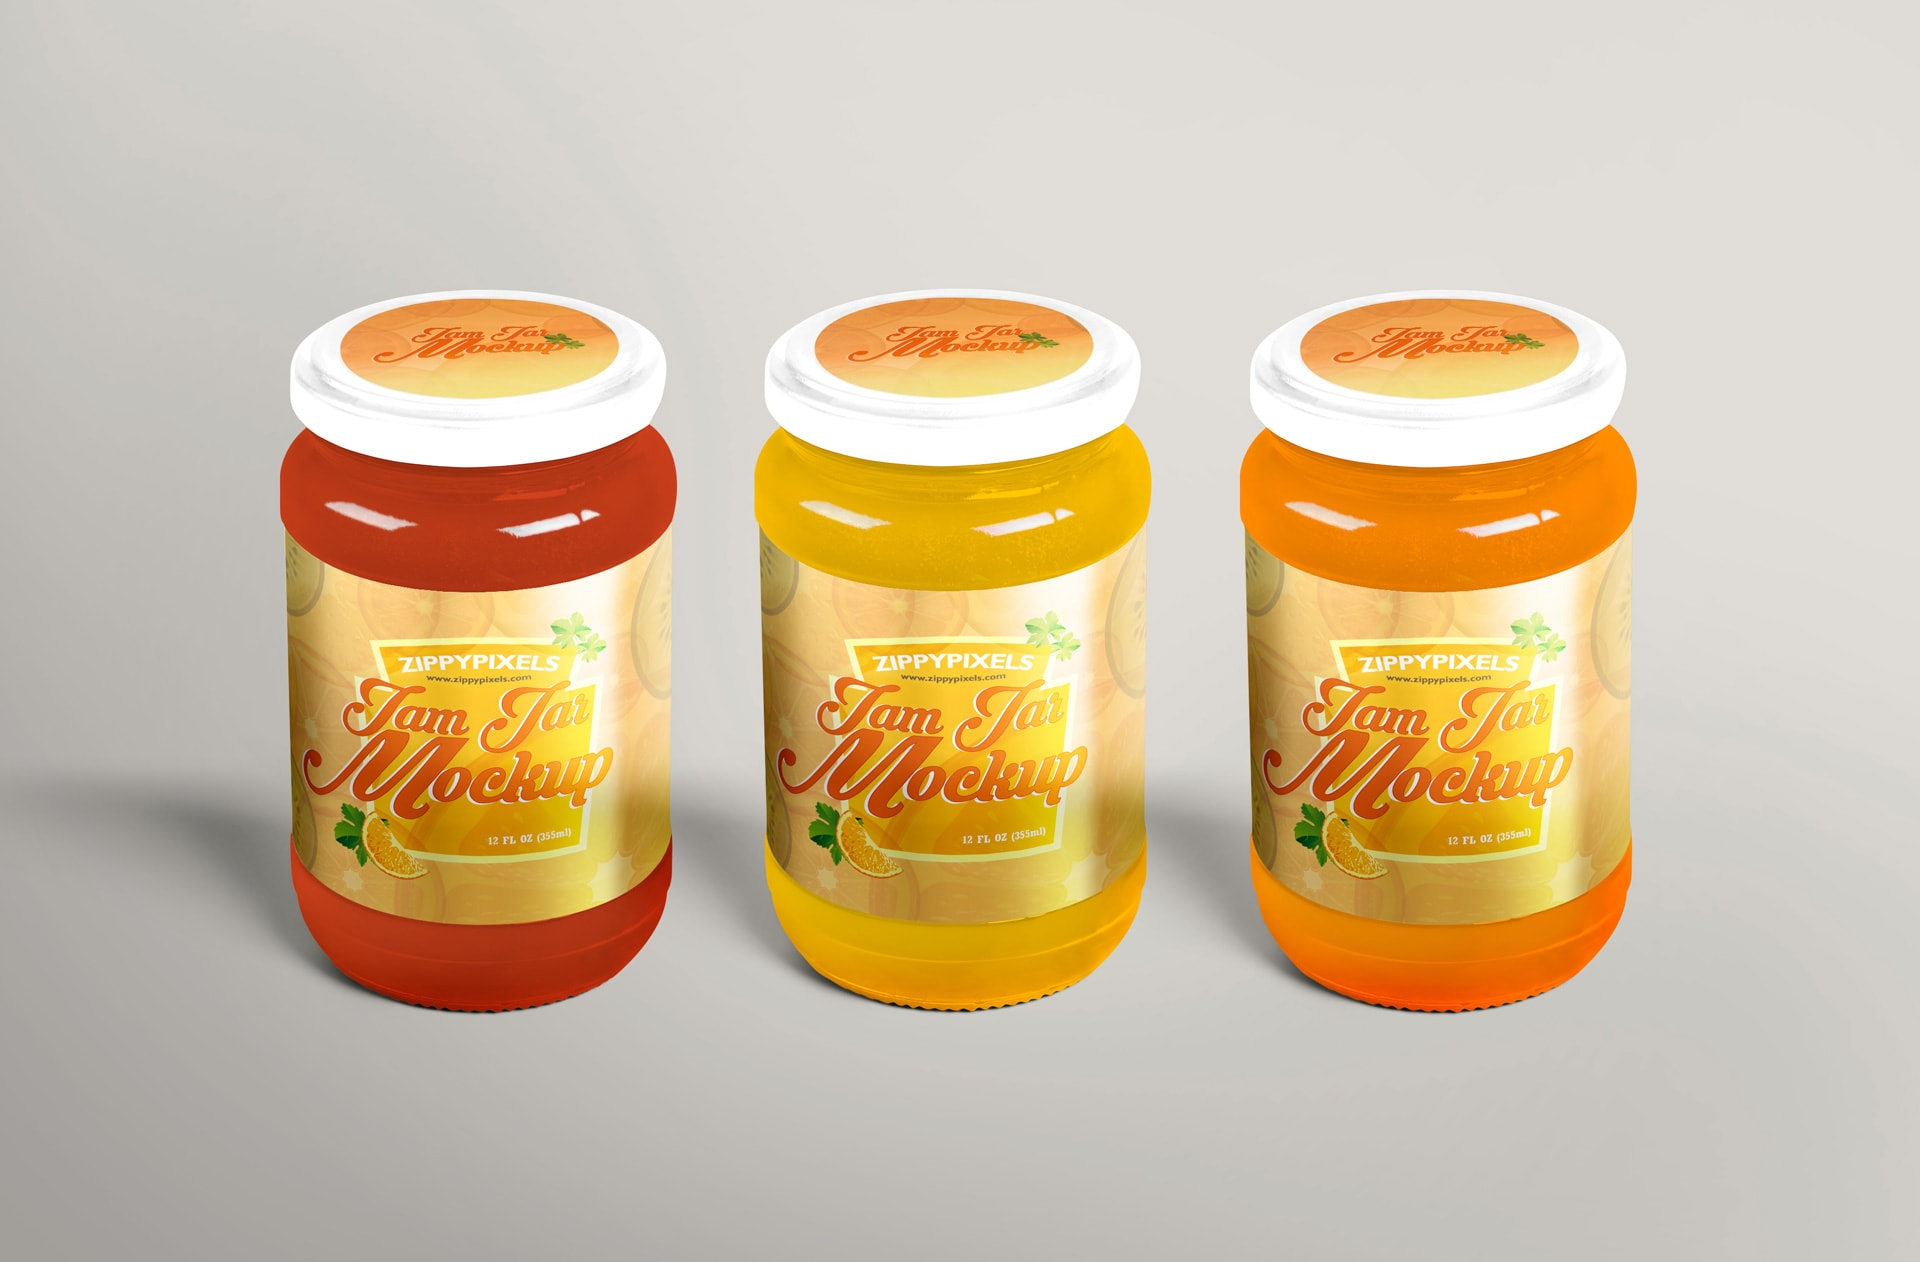 jam and jelly jar mockup for free